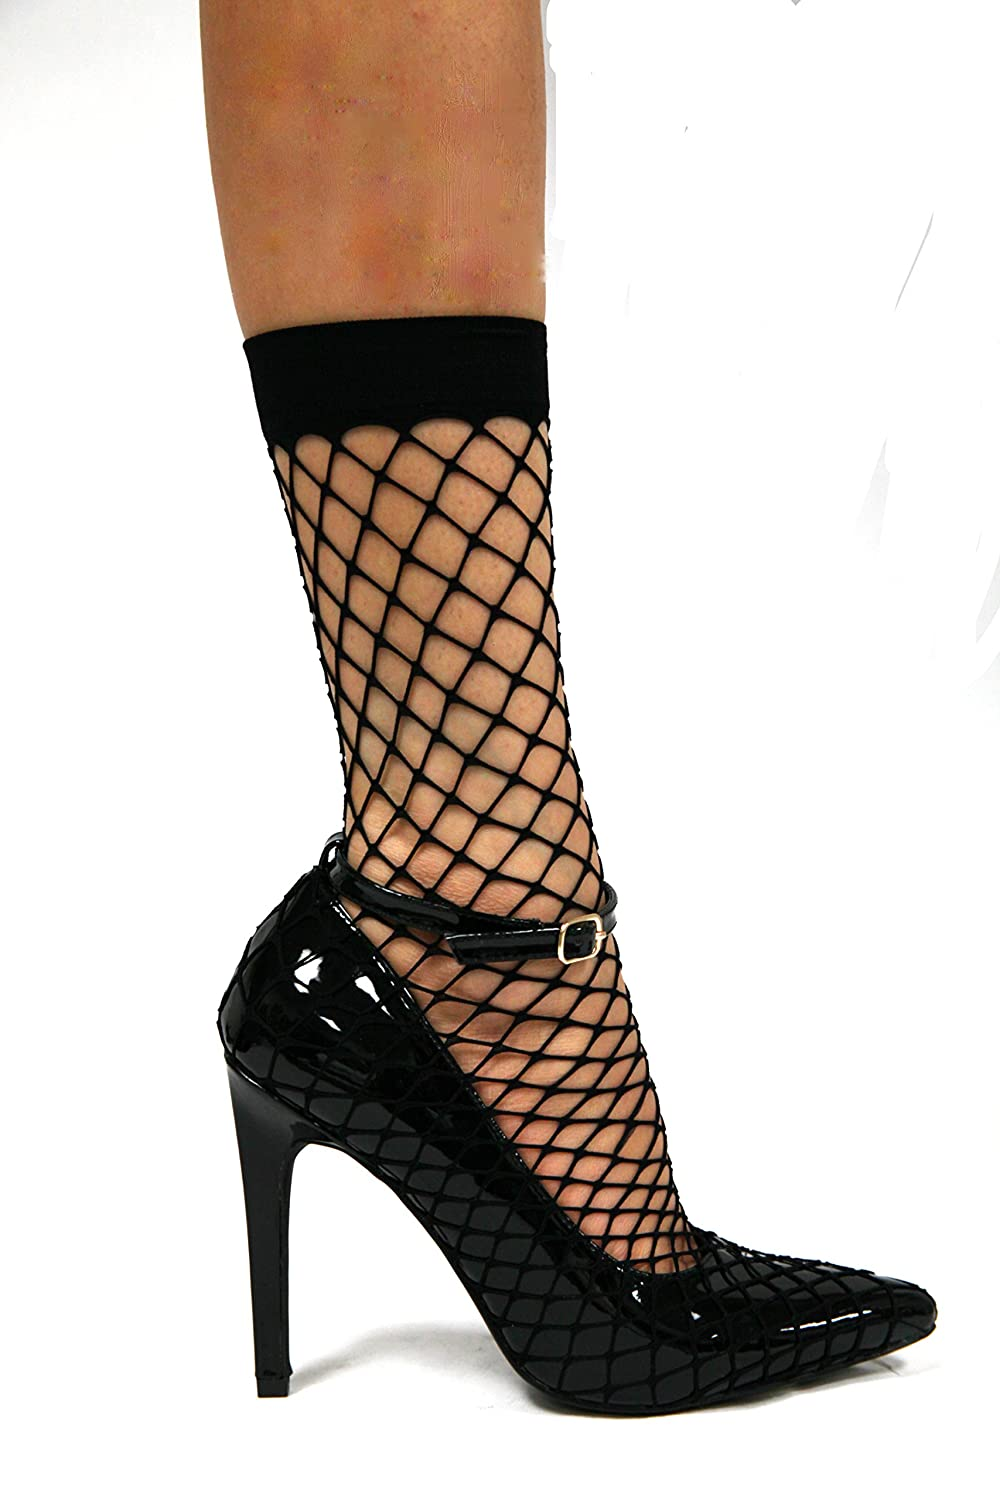 60adcd7c9 CAPE ROBBIN Close Toe Fishnet Pumps Gigi-26: Amazon.ca: Shoes & Handbags